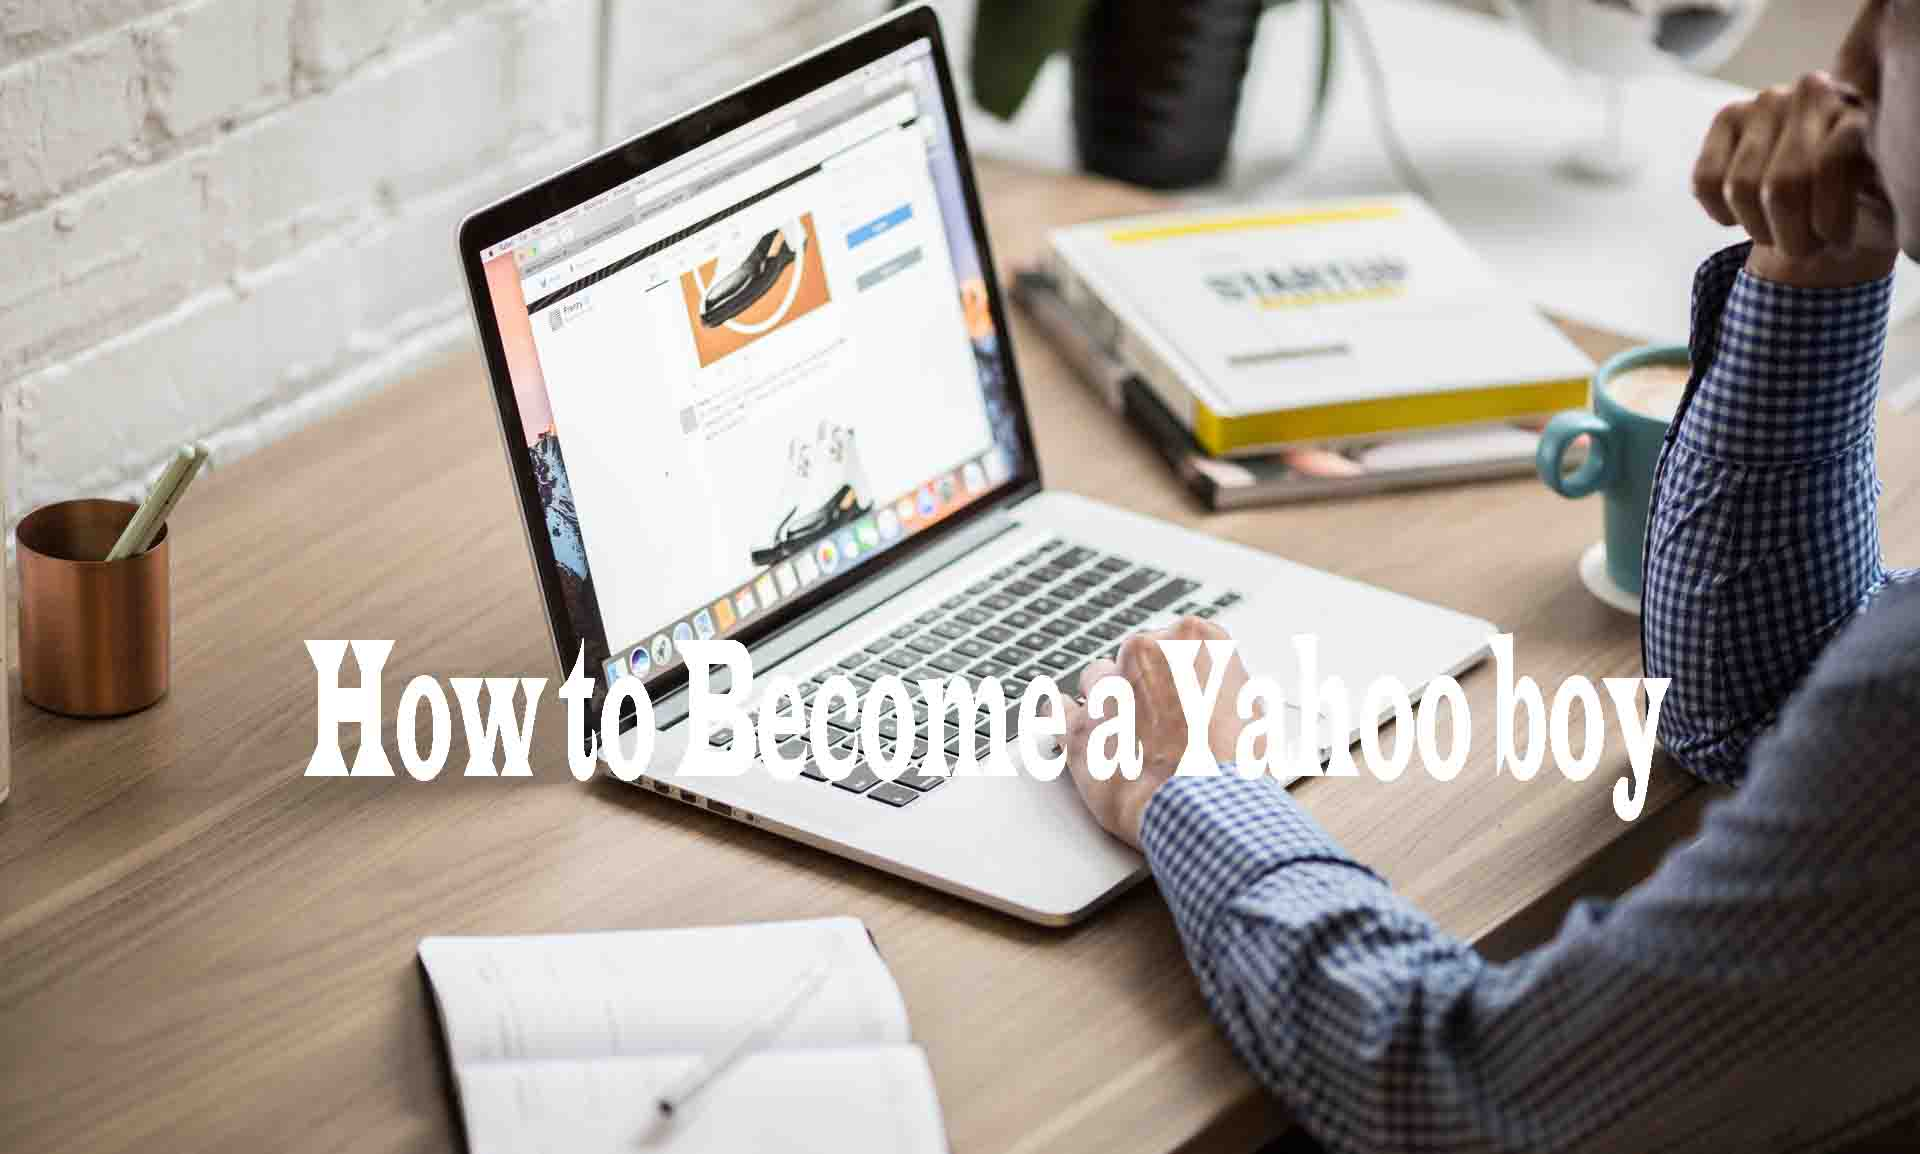 How to sexually please a man yahoo